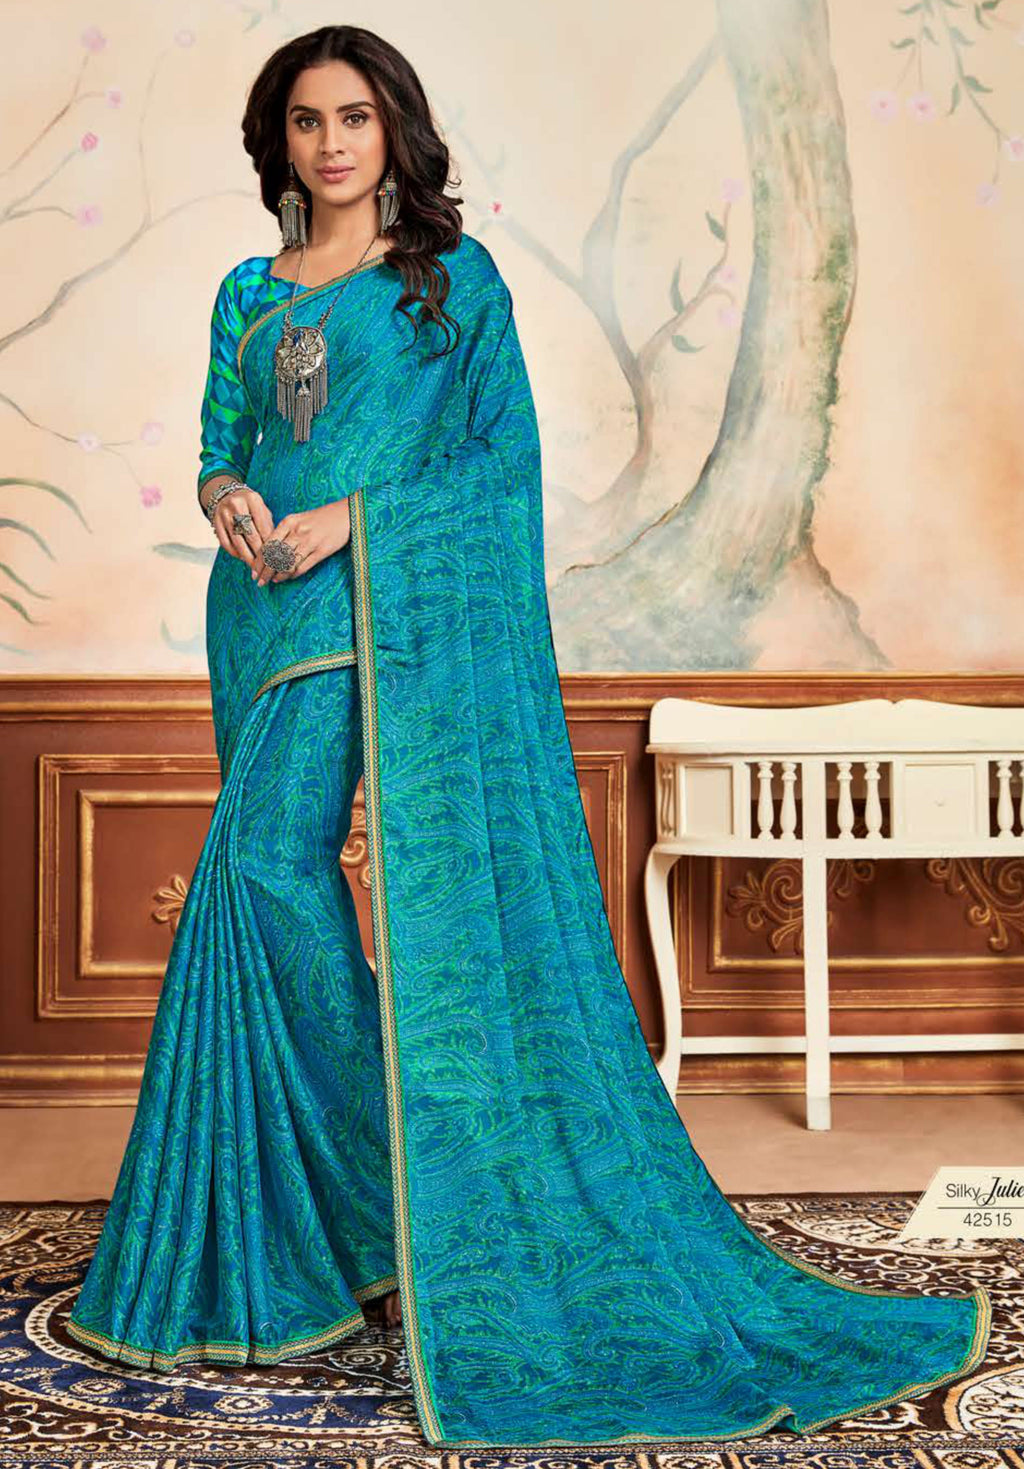 Firozi Color Crepe Chiffon Casual Party Sarees NYF-8588